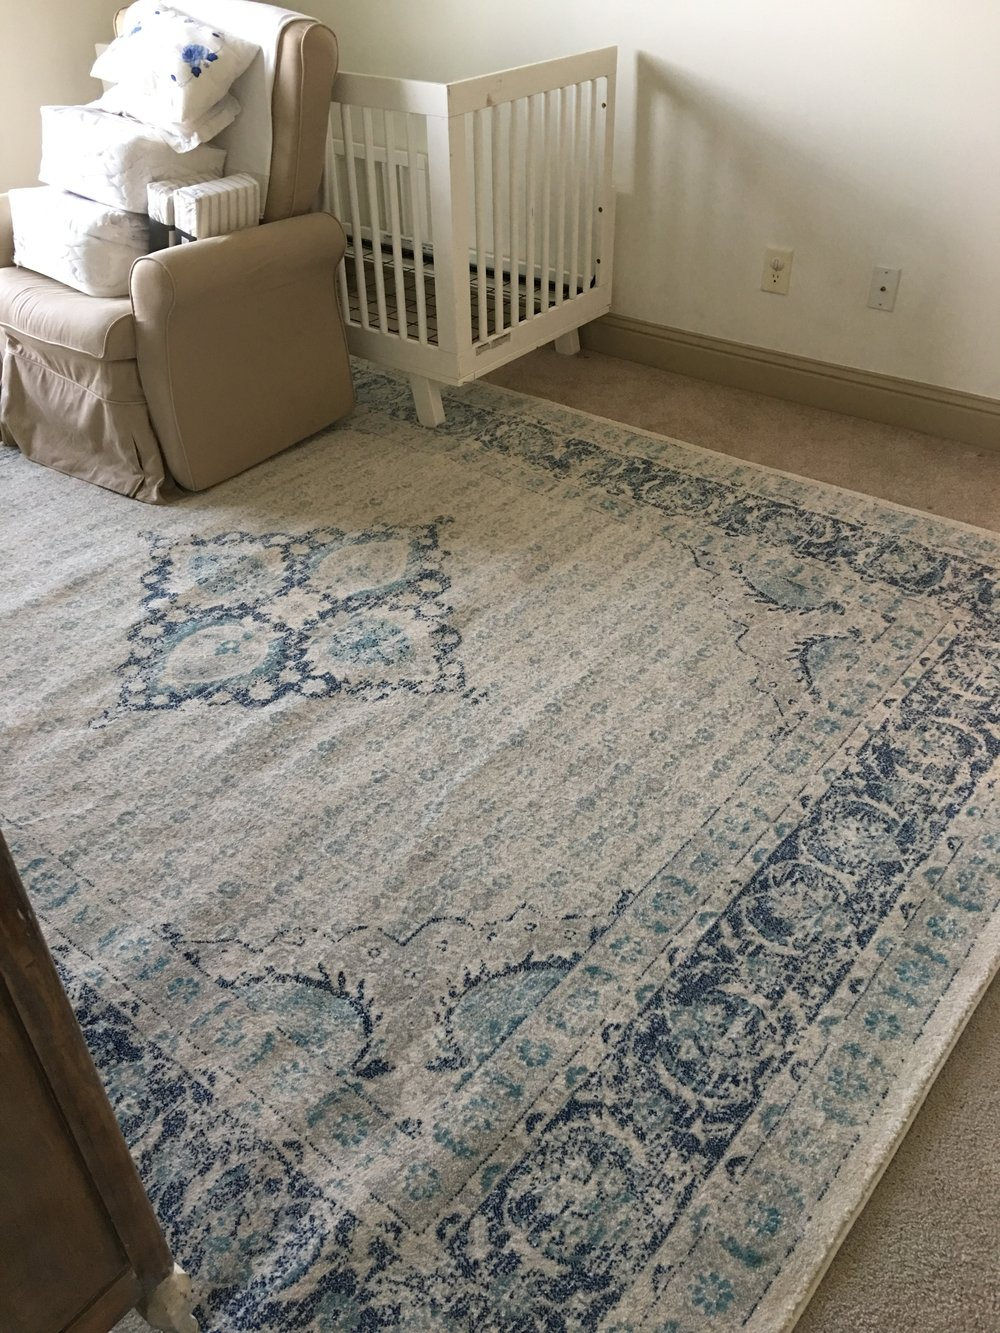 rug in place